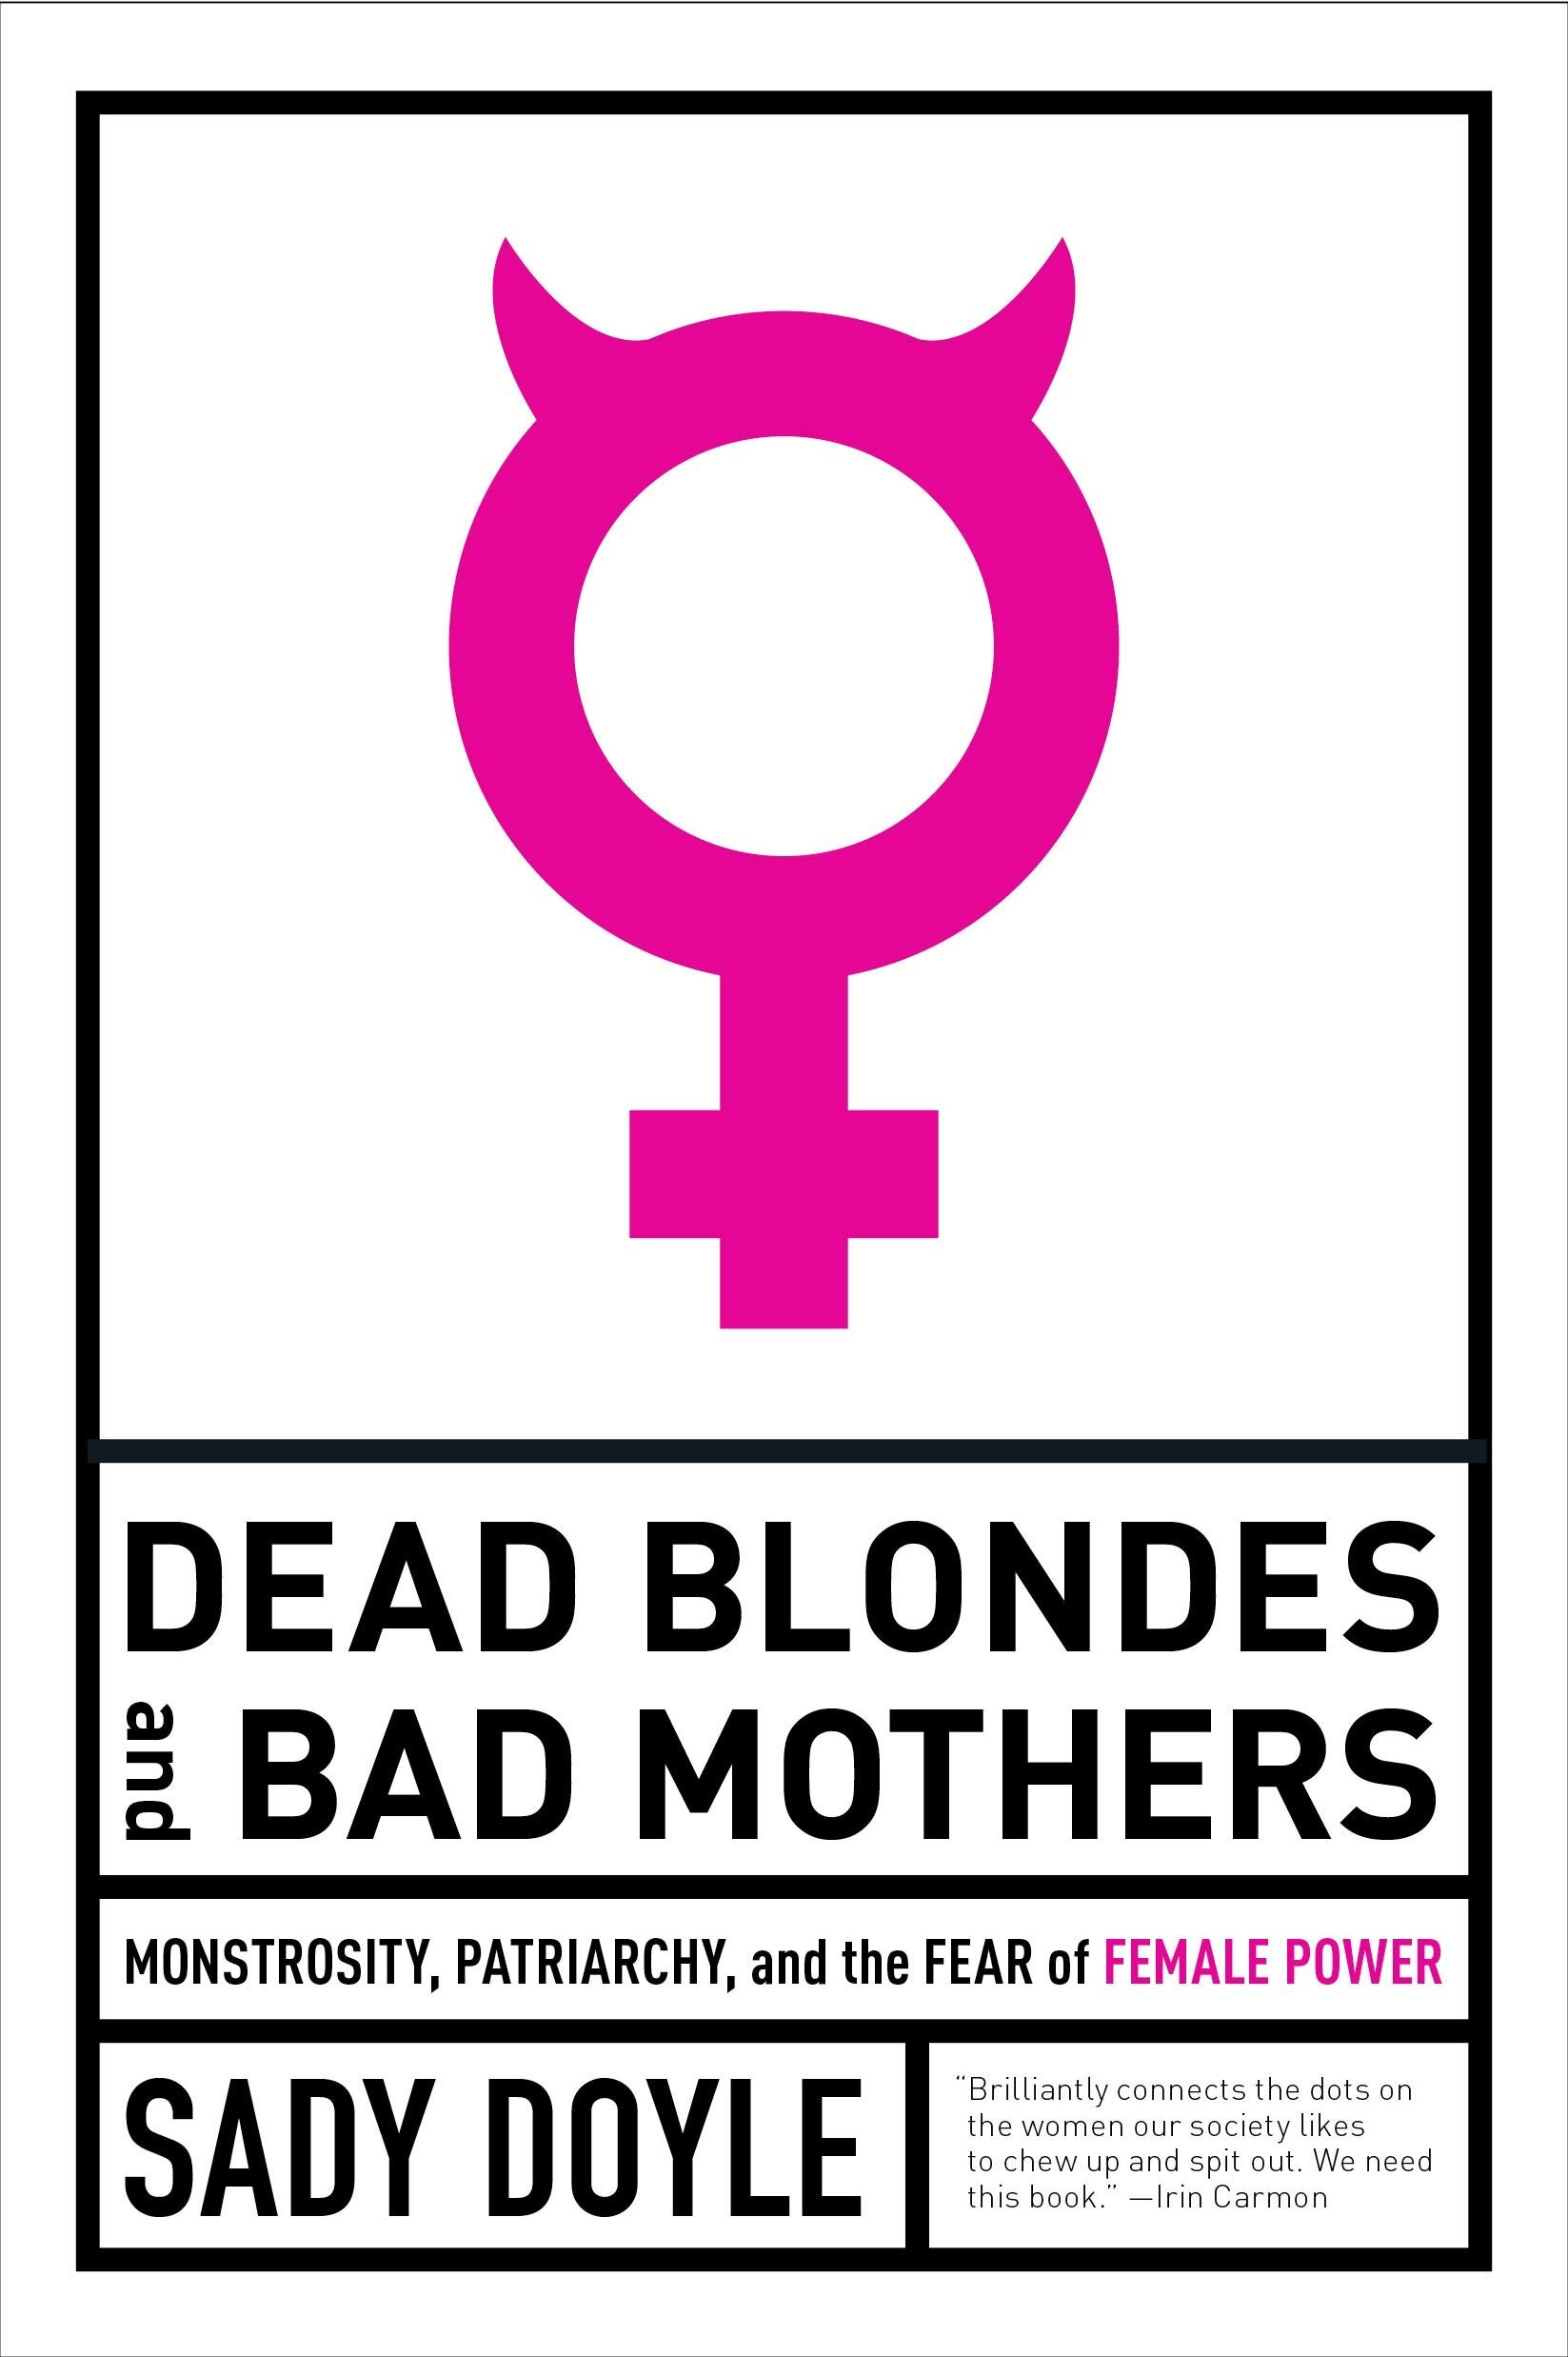 Dead Blondes & Bad Mothers-Monstrosity, Patriarchy, and the Fear of Female Power by Sady Doyle.jpg